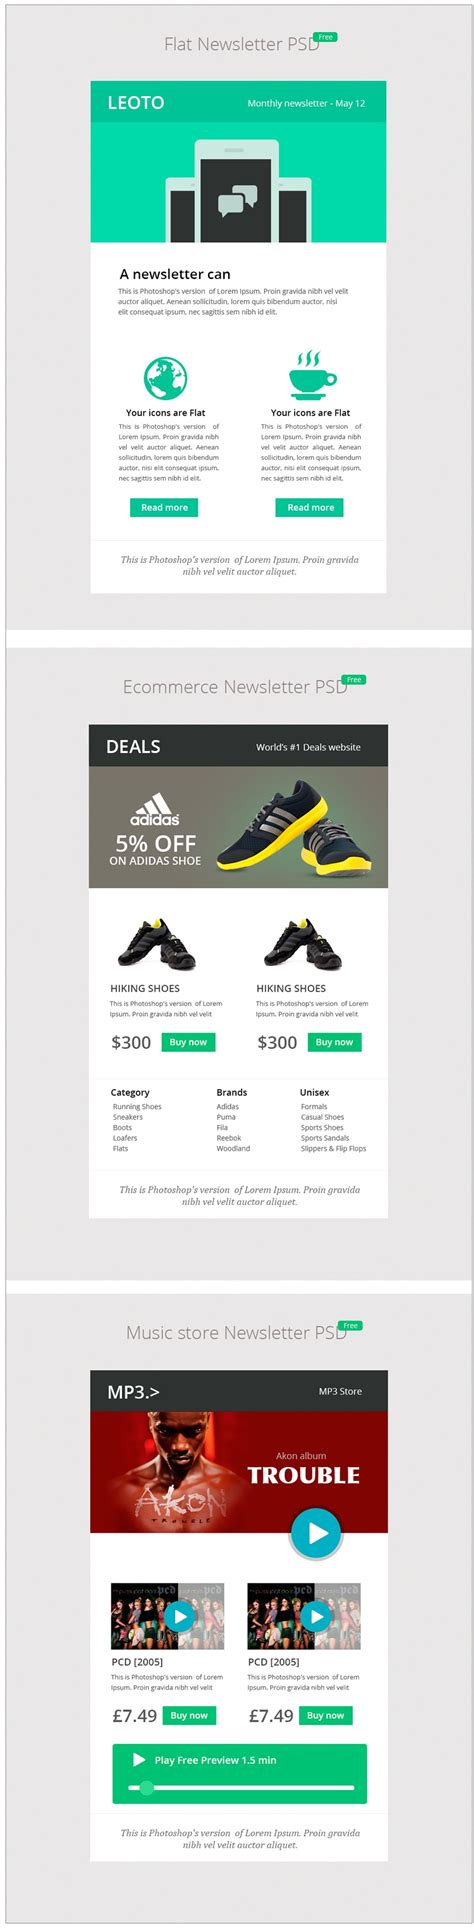 Free Email Template Psd 28 Images Free Email Newsletter Templates Psd 187 Css Author Free Css Email Template